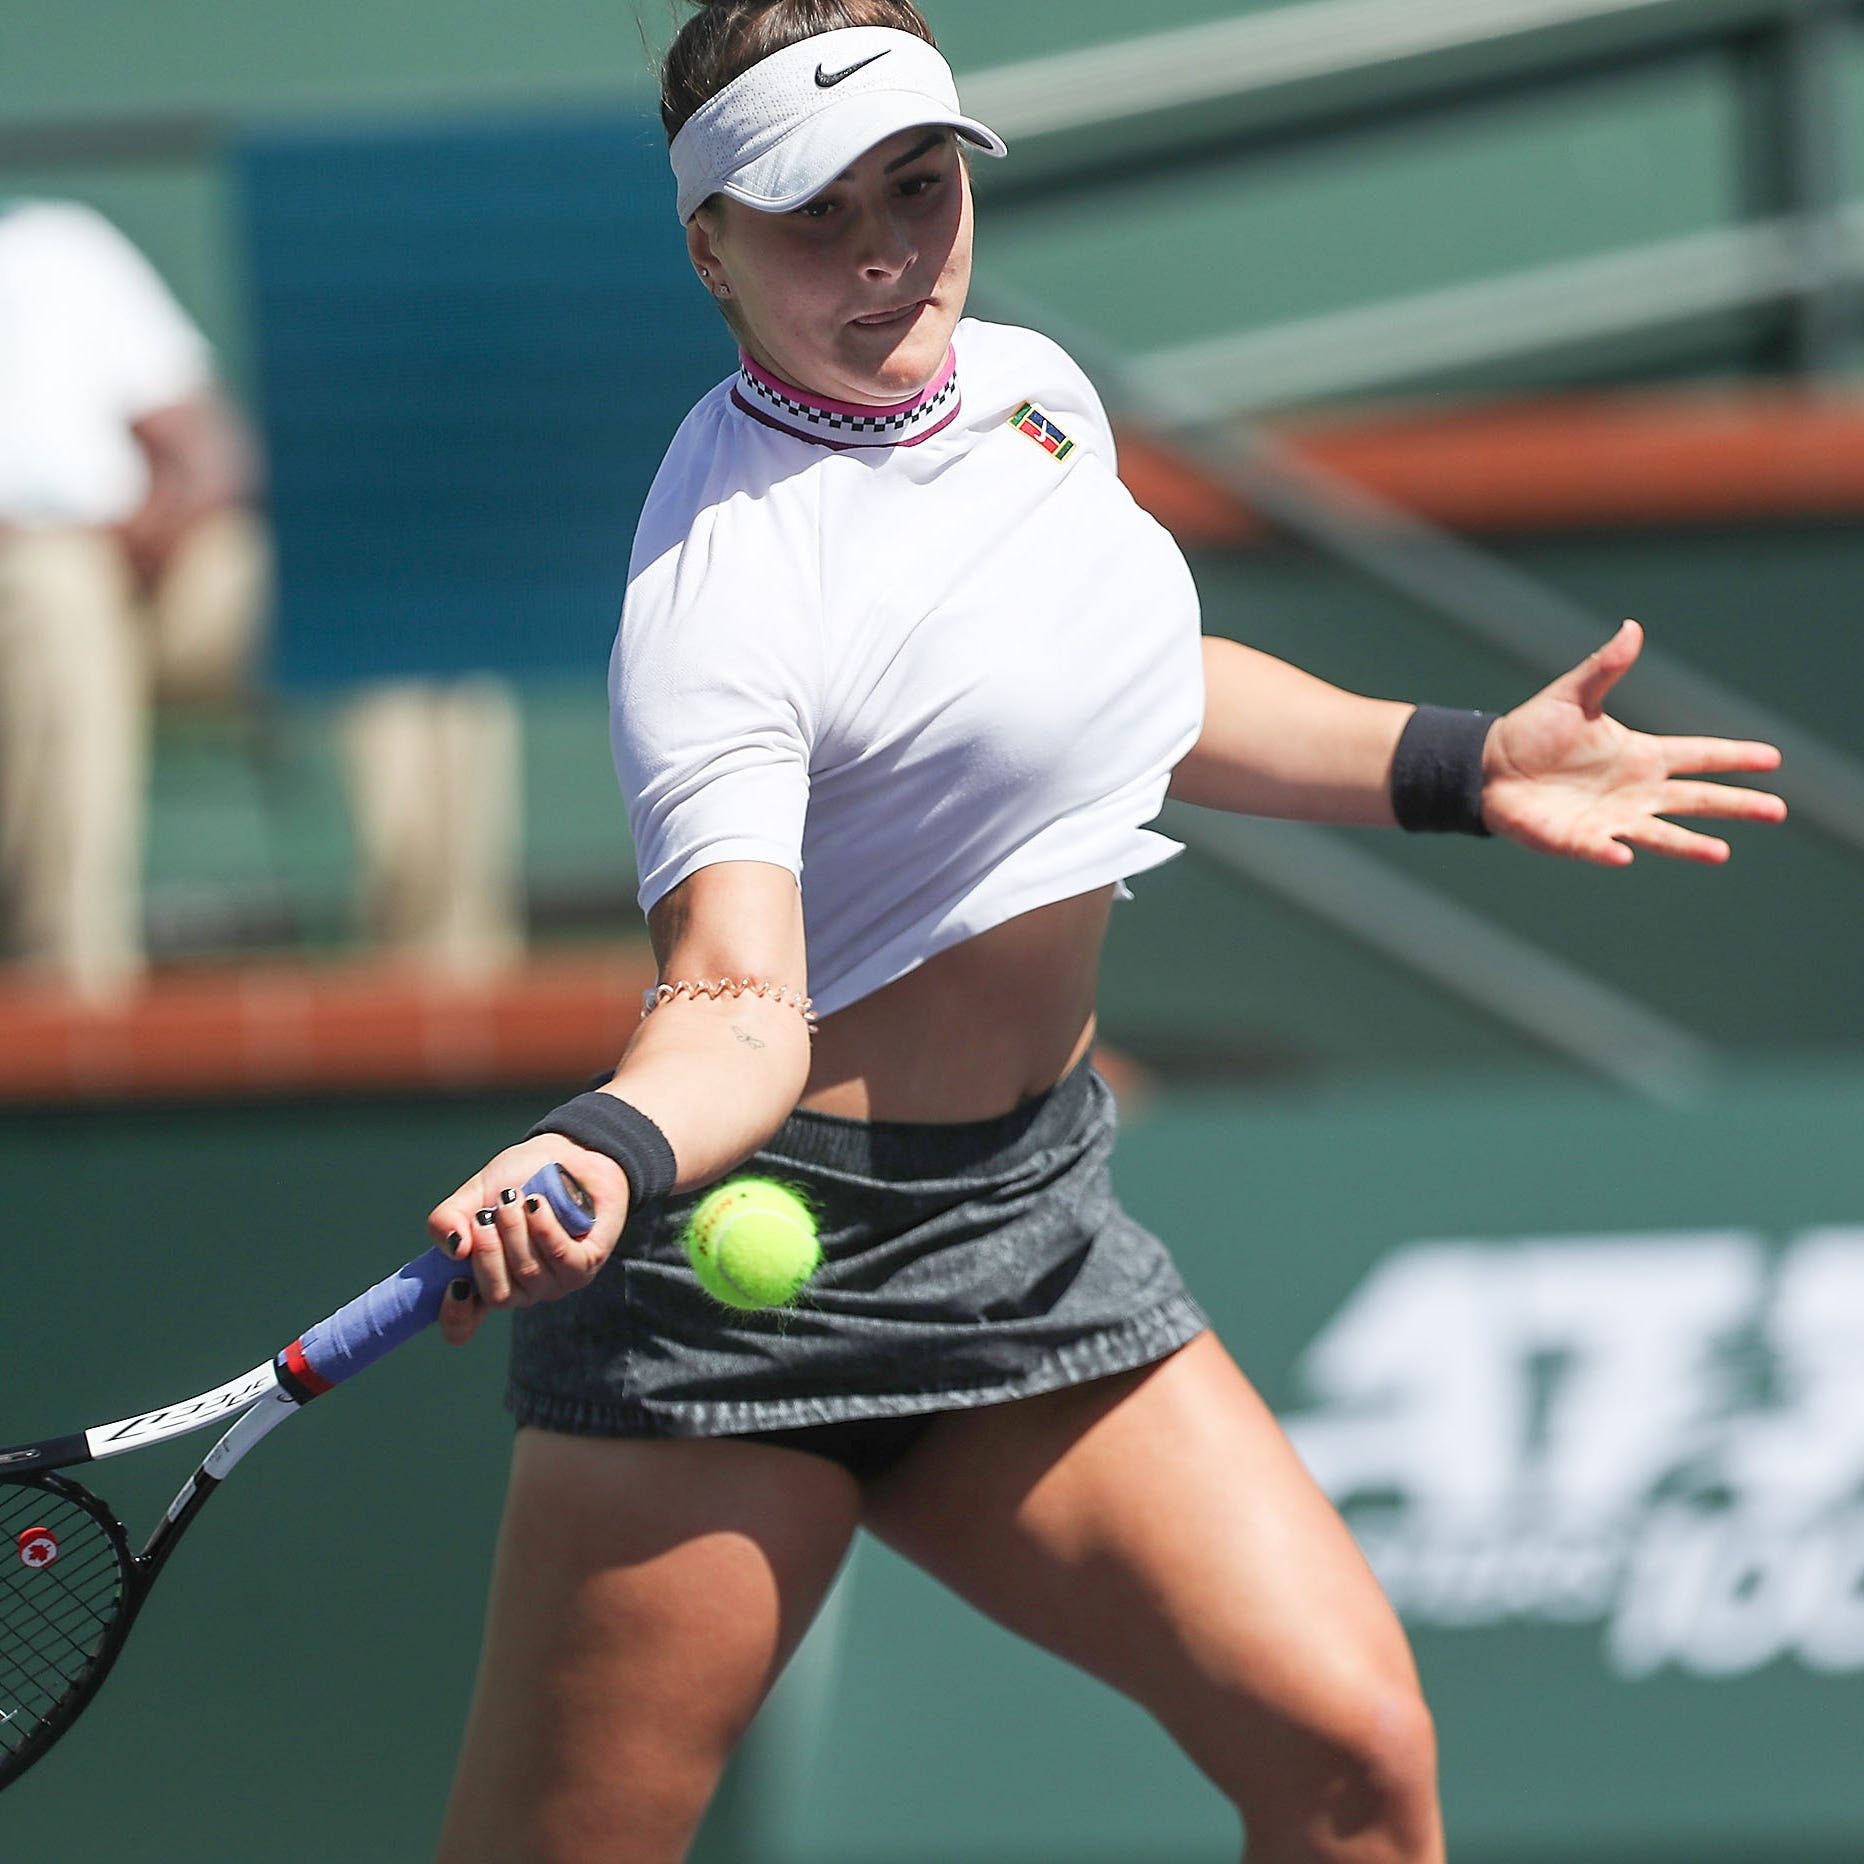 Indian Wells women's final: Can 18-year-old Bianca Andreescu finish historic run?